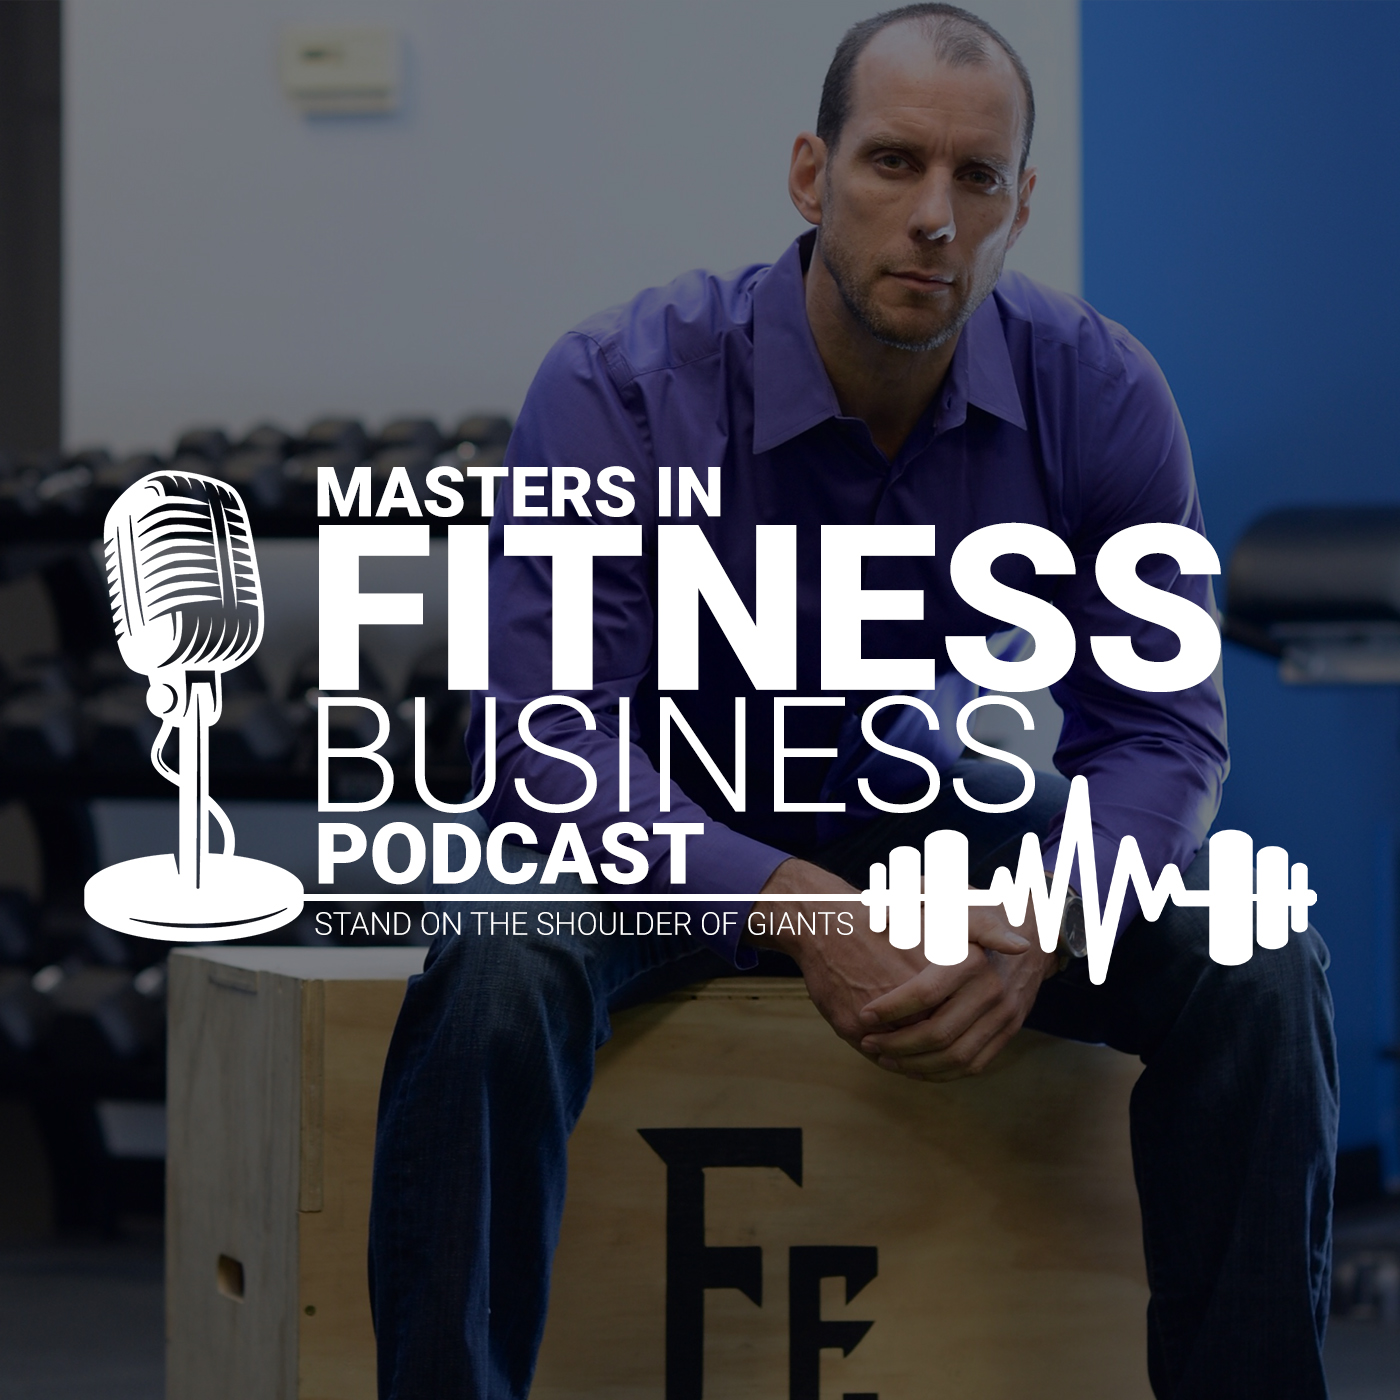 Masters in Fitness Business Podcast show art